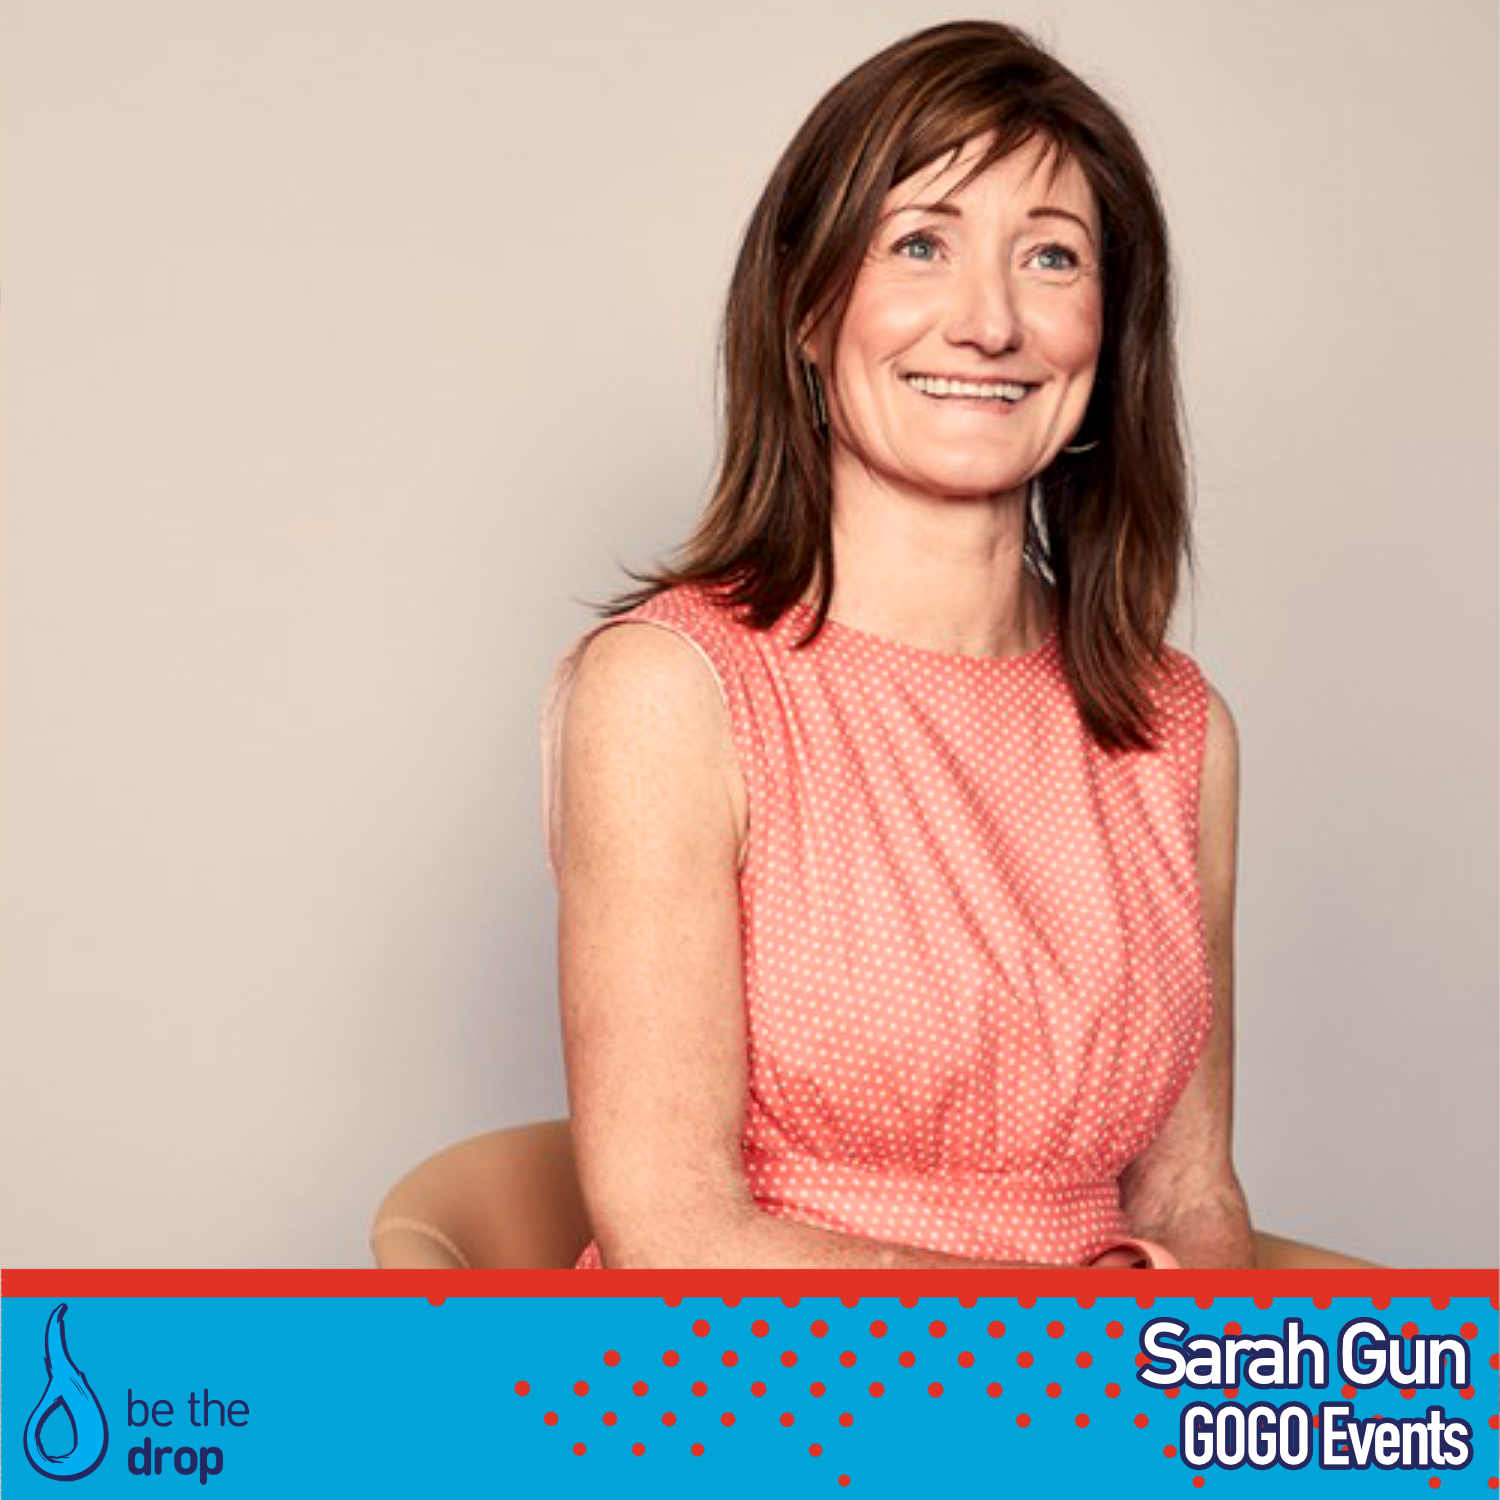 Sarah Gun Discusses Diversity In The Workplace And Social Enterprise